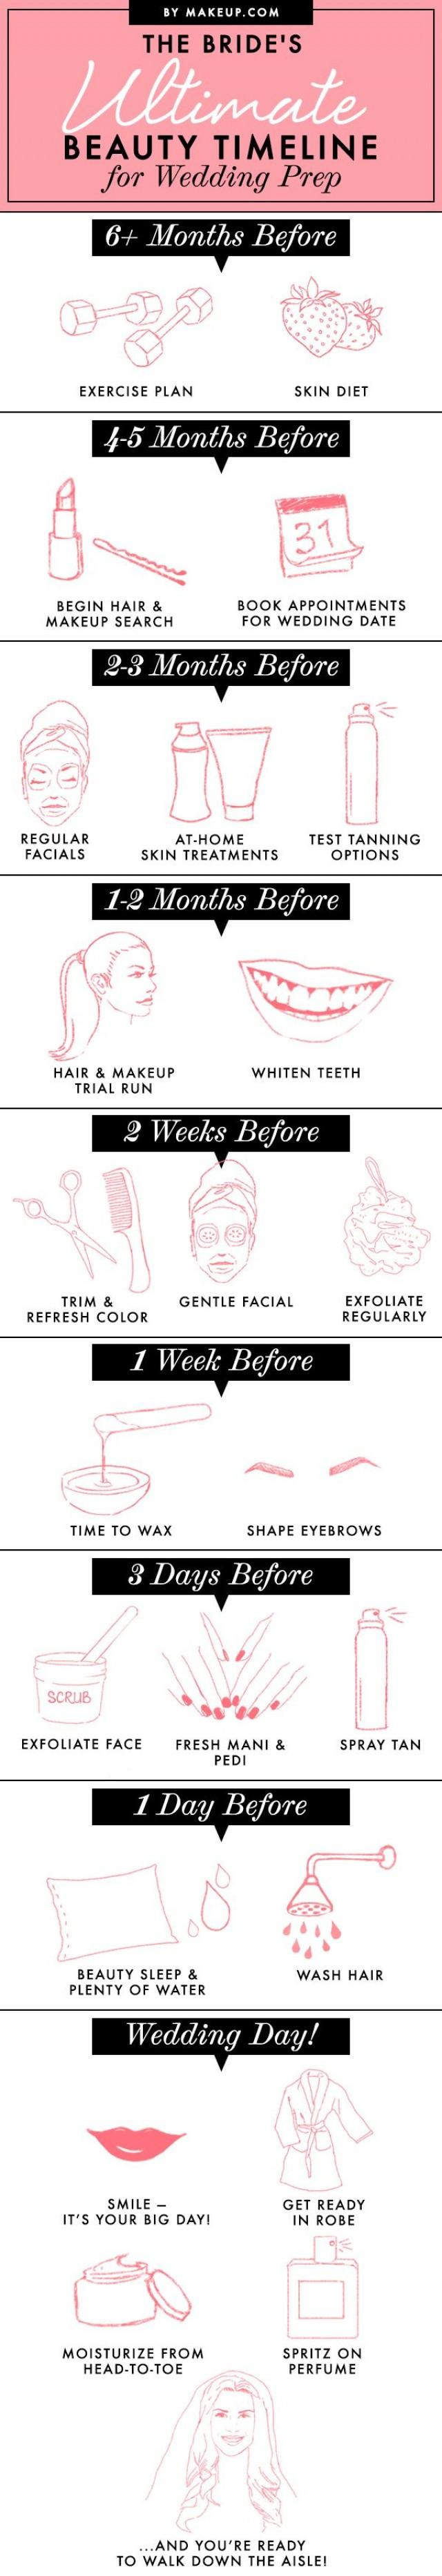 Wedding Hair And Makeup Timeline : The Brides Ultimate Beauty Timeline For Wedding Prep ...